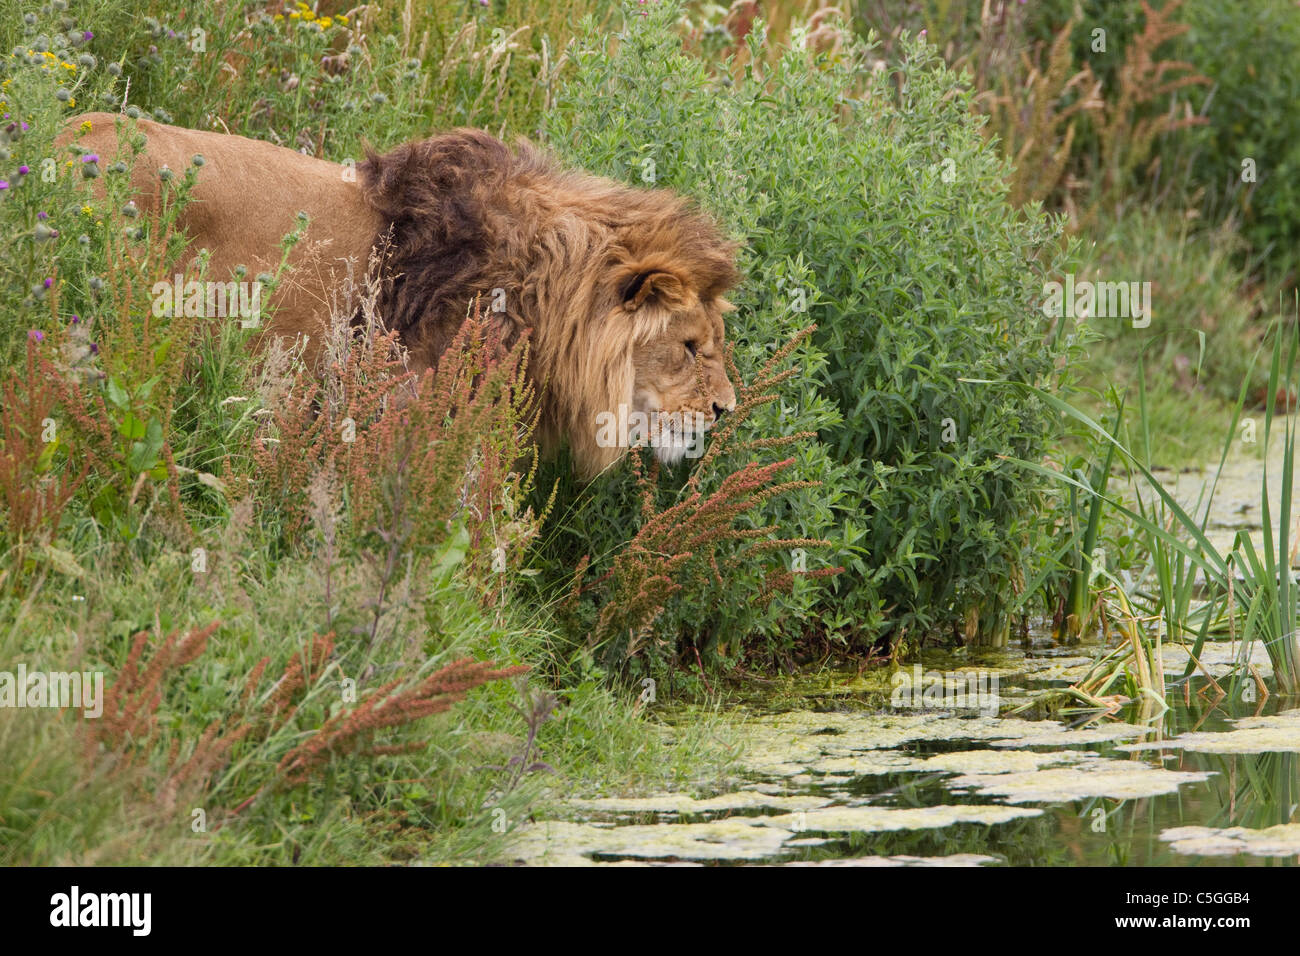 Lion male Panthera leo with large shaggy mane in thick undergrowth near stream taken under controlled conditions Stock Photo